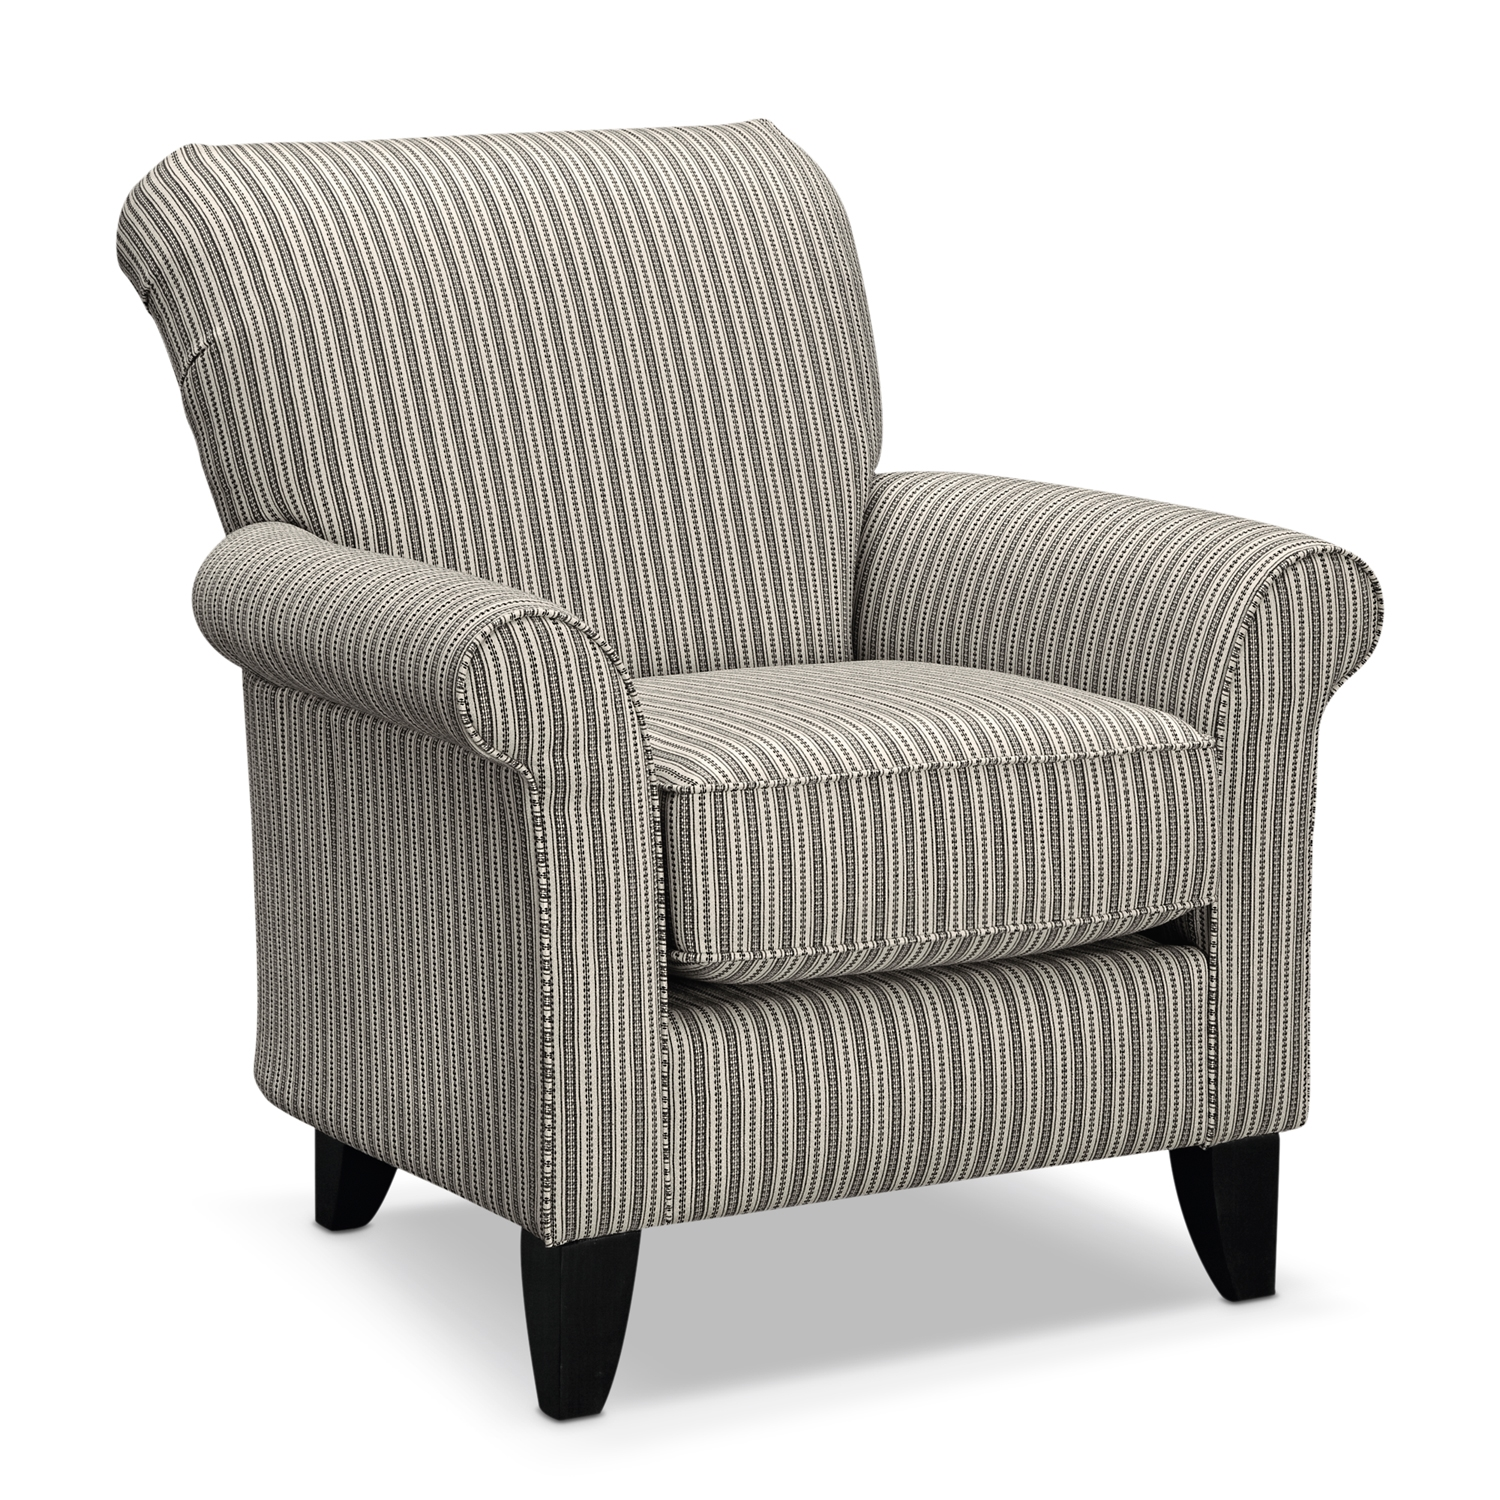 criterion of comfortable chairs for living room homesfeed furniture natural stripe design upholstered accent chairs